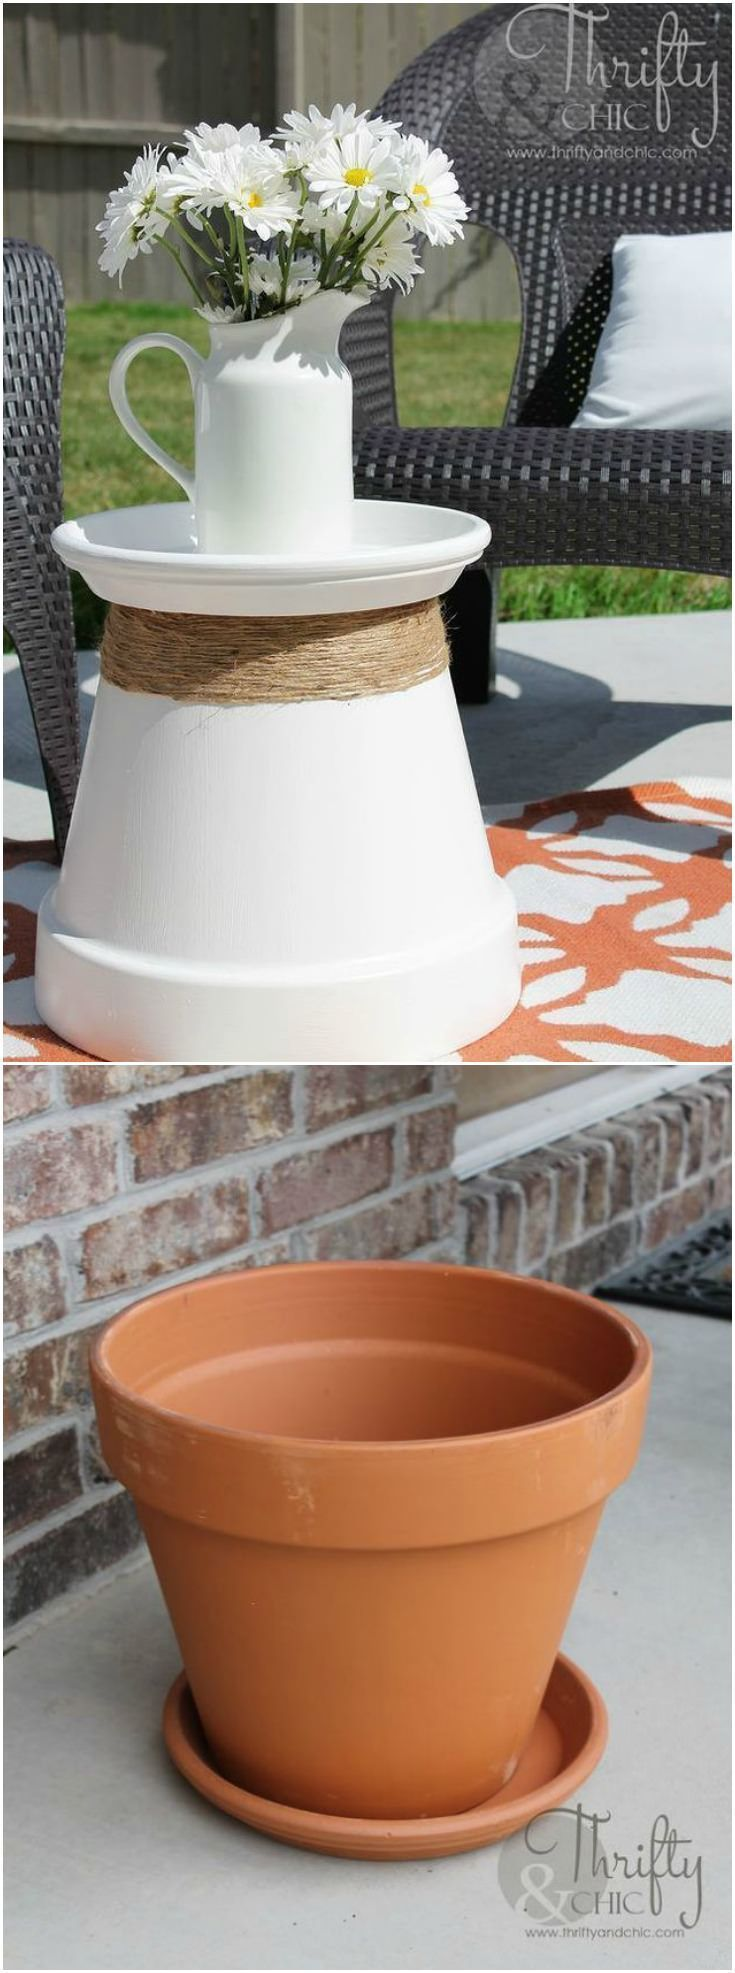 Repurposed Terracotta Pot Into Accent Table: I've been in the need of some sturdy accent tables for my porch and patio and found just the thing to do the trick! Plus, repurposing is always fun :)